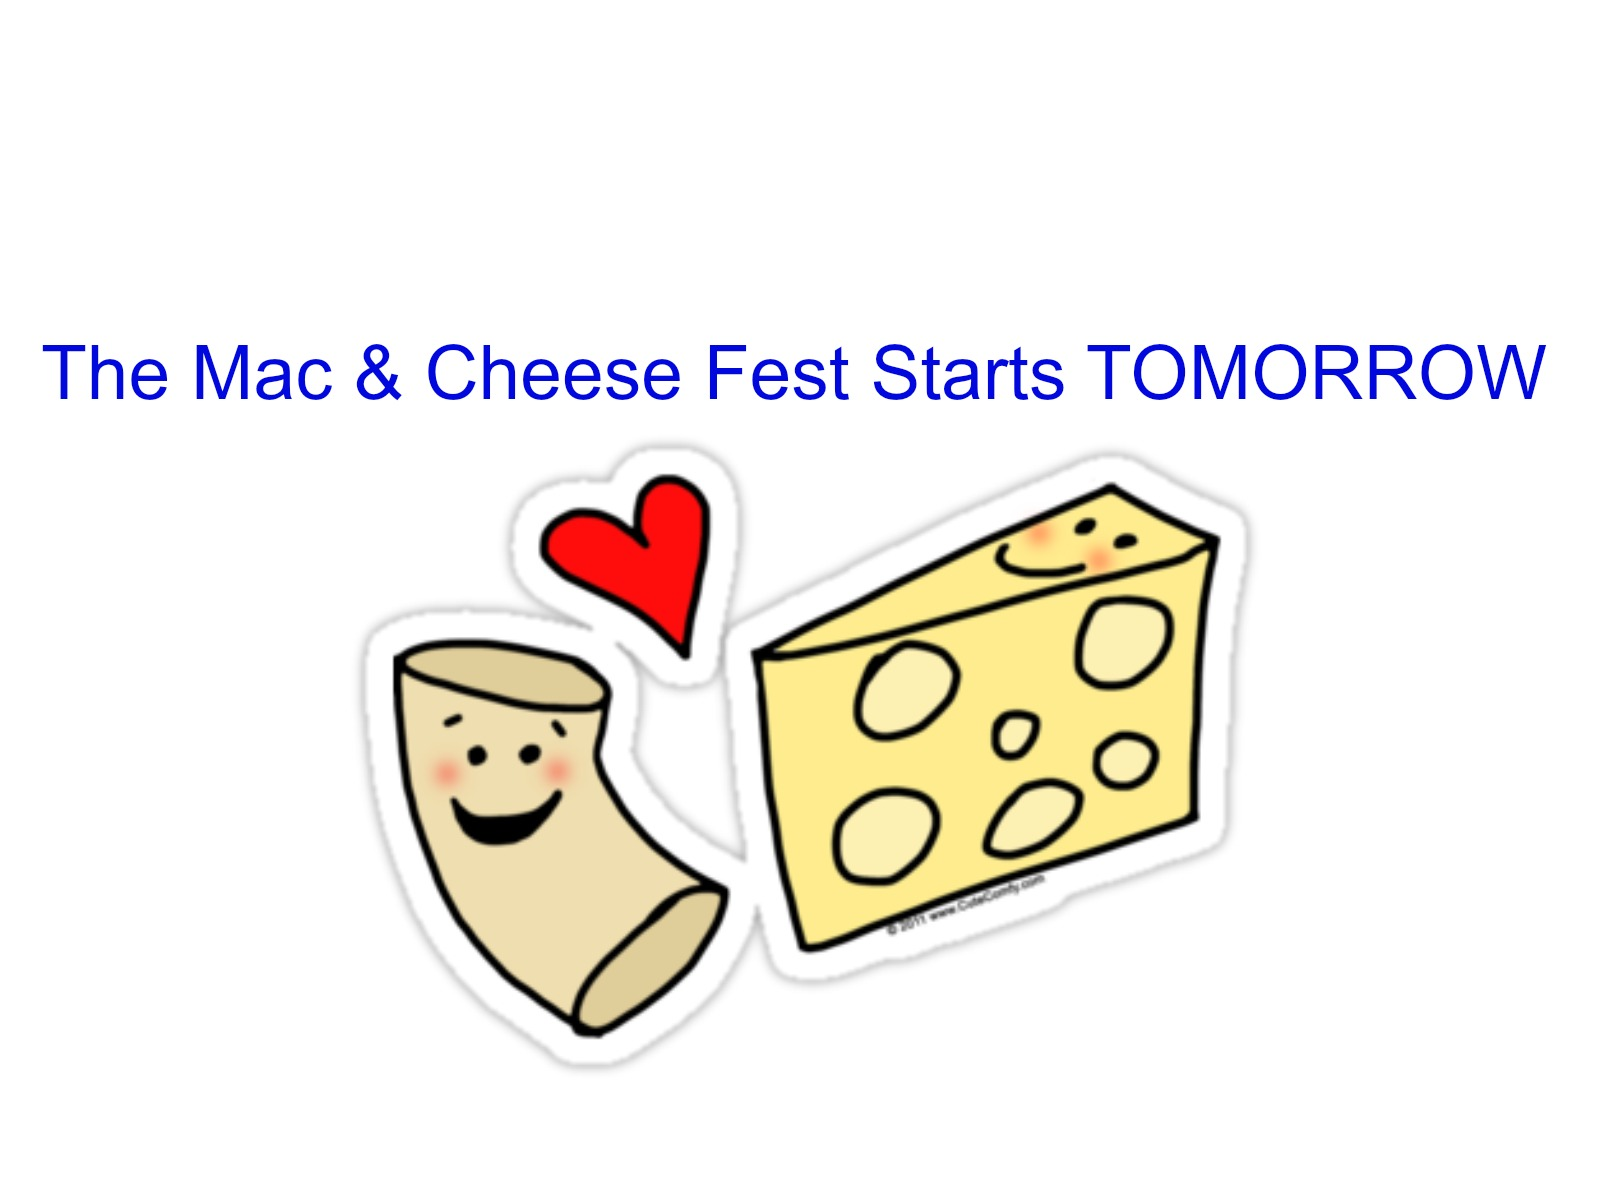 The Mac And Cheese Fest Starts Tomorrow